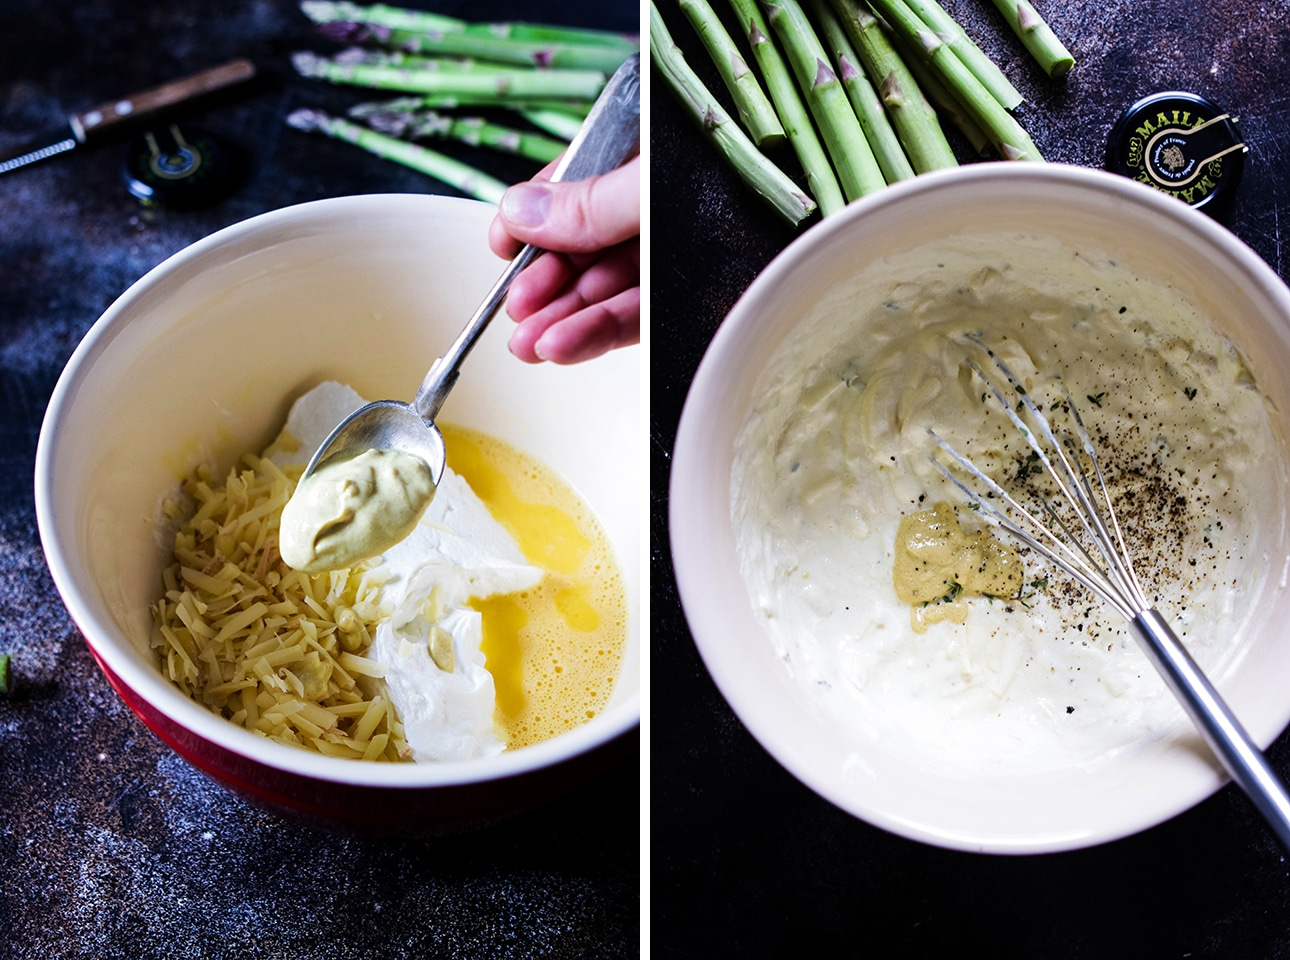 Collage: Mustard Being Added to a Mixing Bowl with Filling for Asparagus Quiche Next to a Bowl of Filling with a Whisk